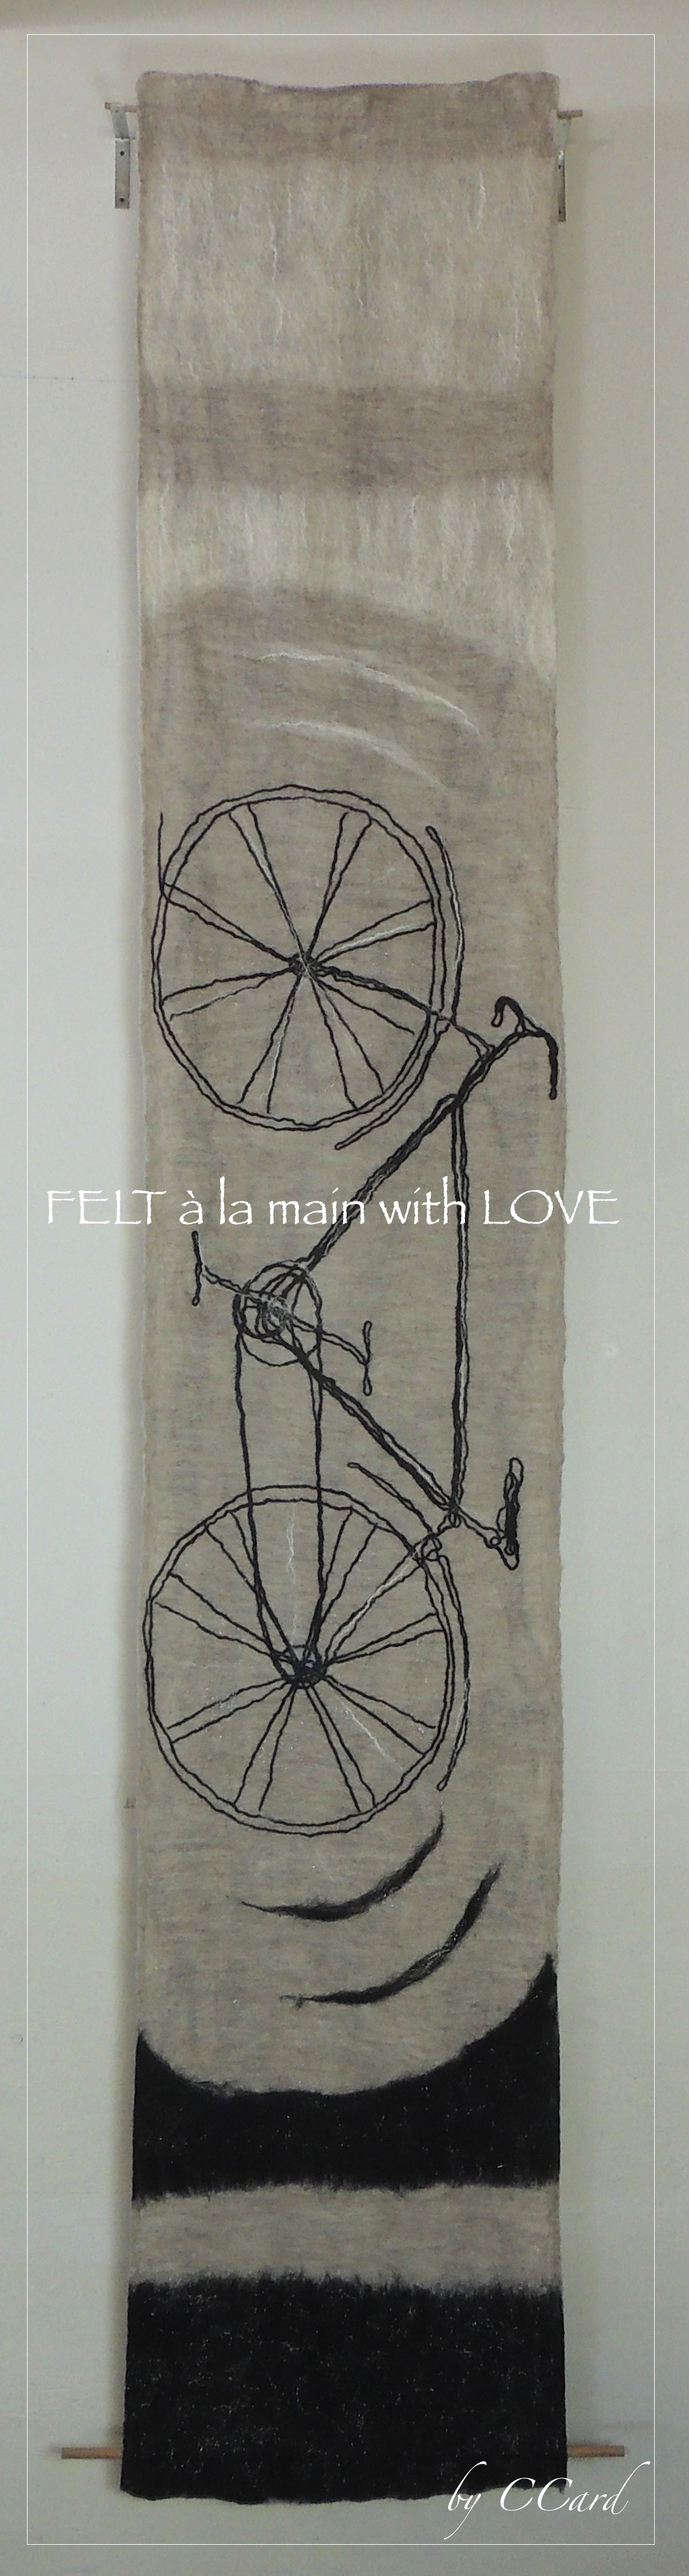 Cycle wall hanging-signed.JPG